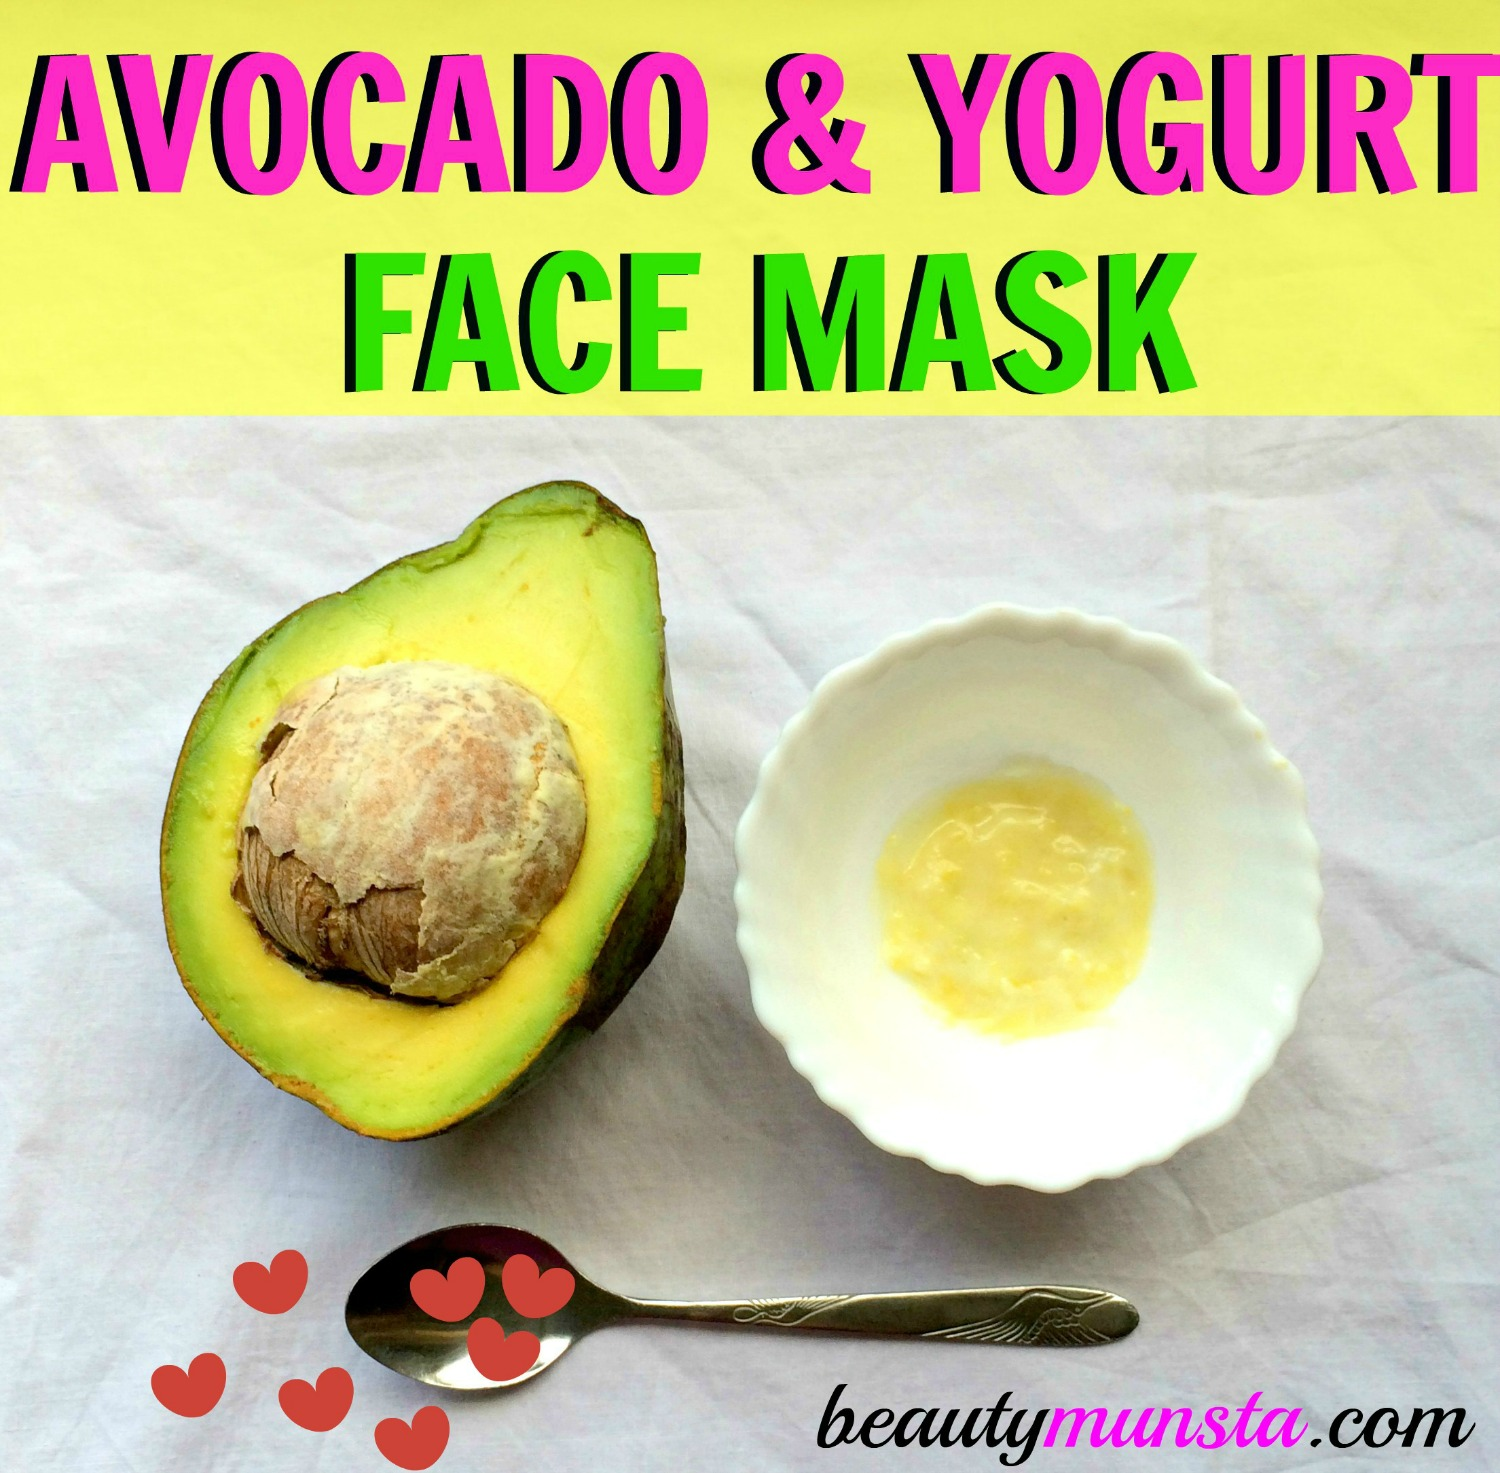 Make A Moisturizing Face Mask With Avocado